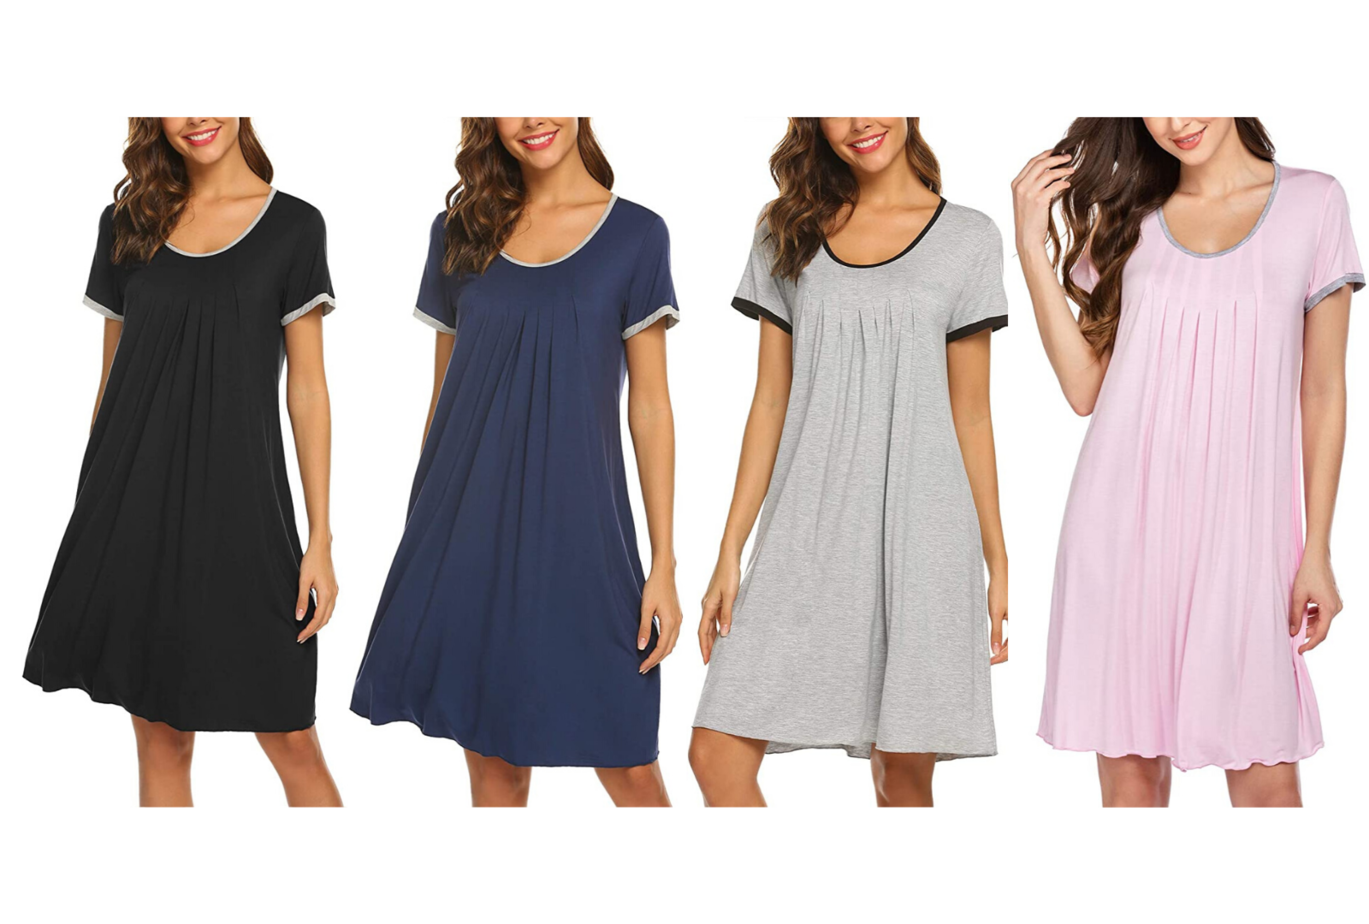 amazon loungewear nightgowns